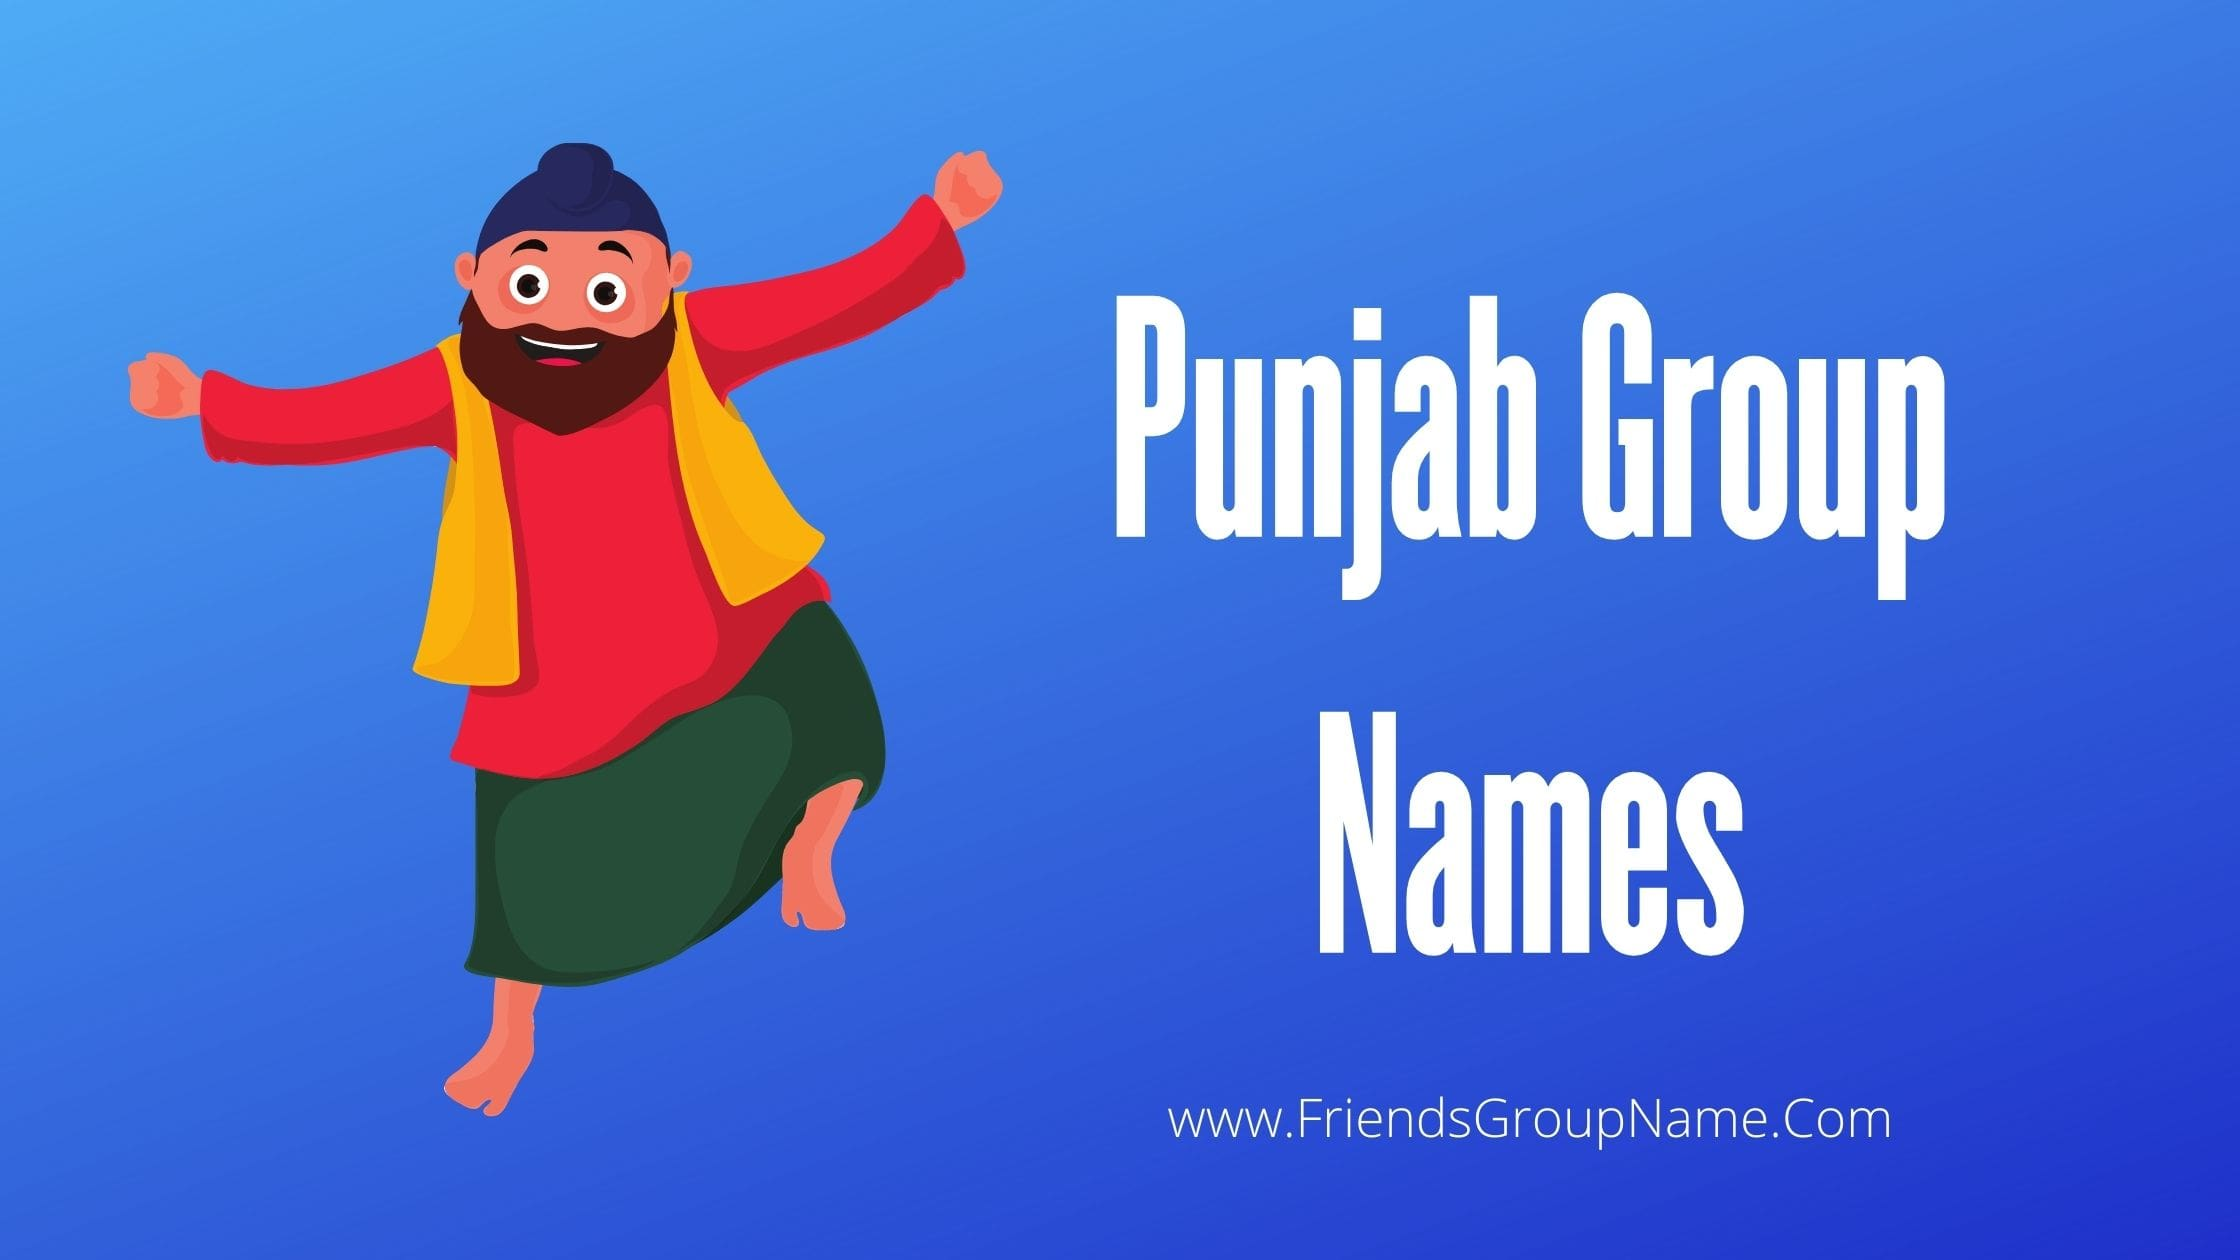 Punjab Group Names, group names